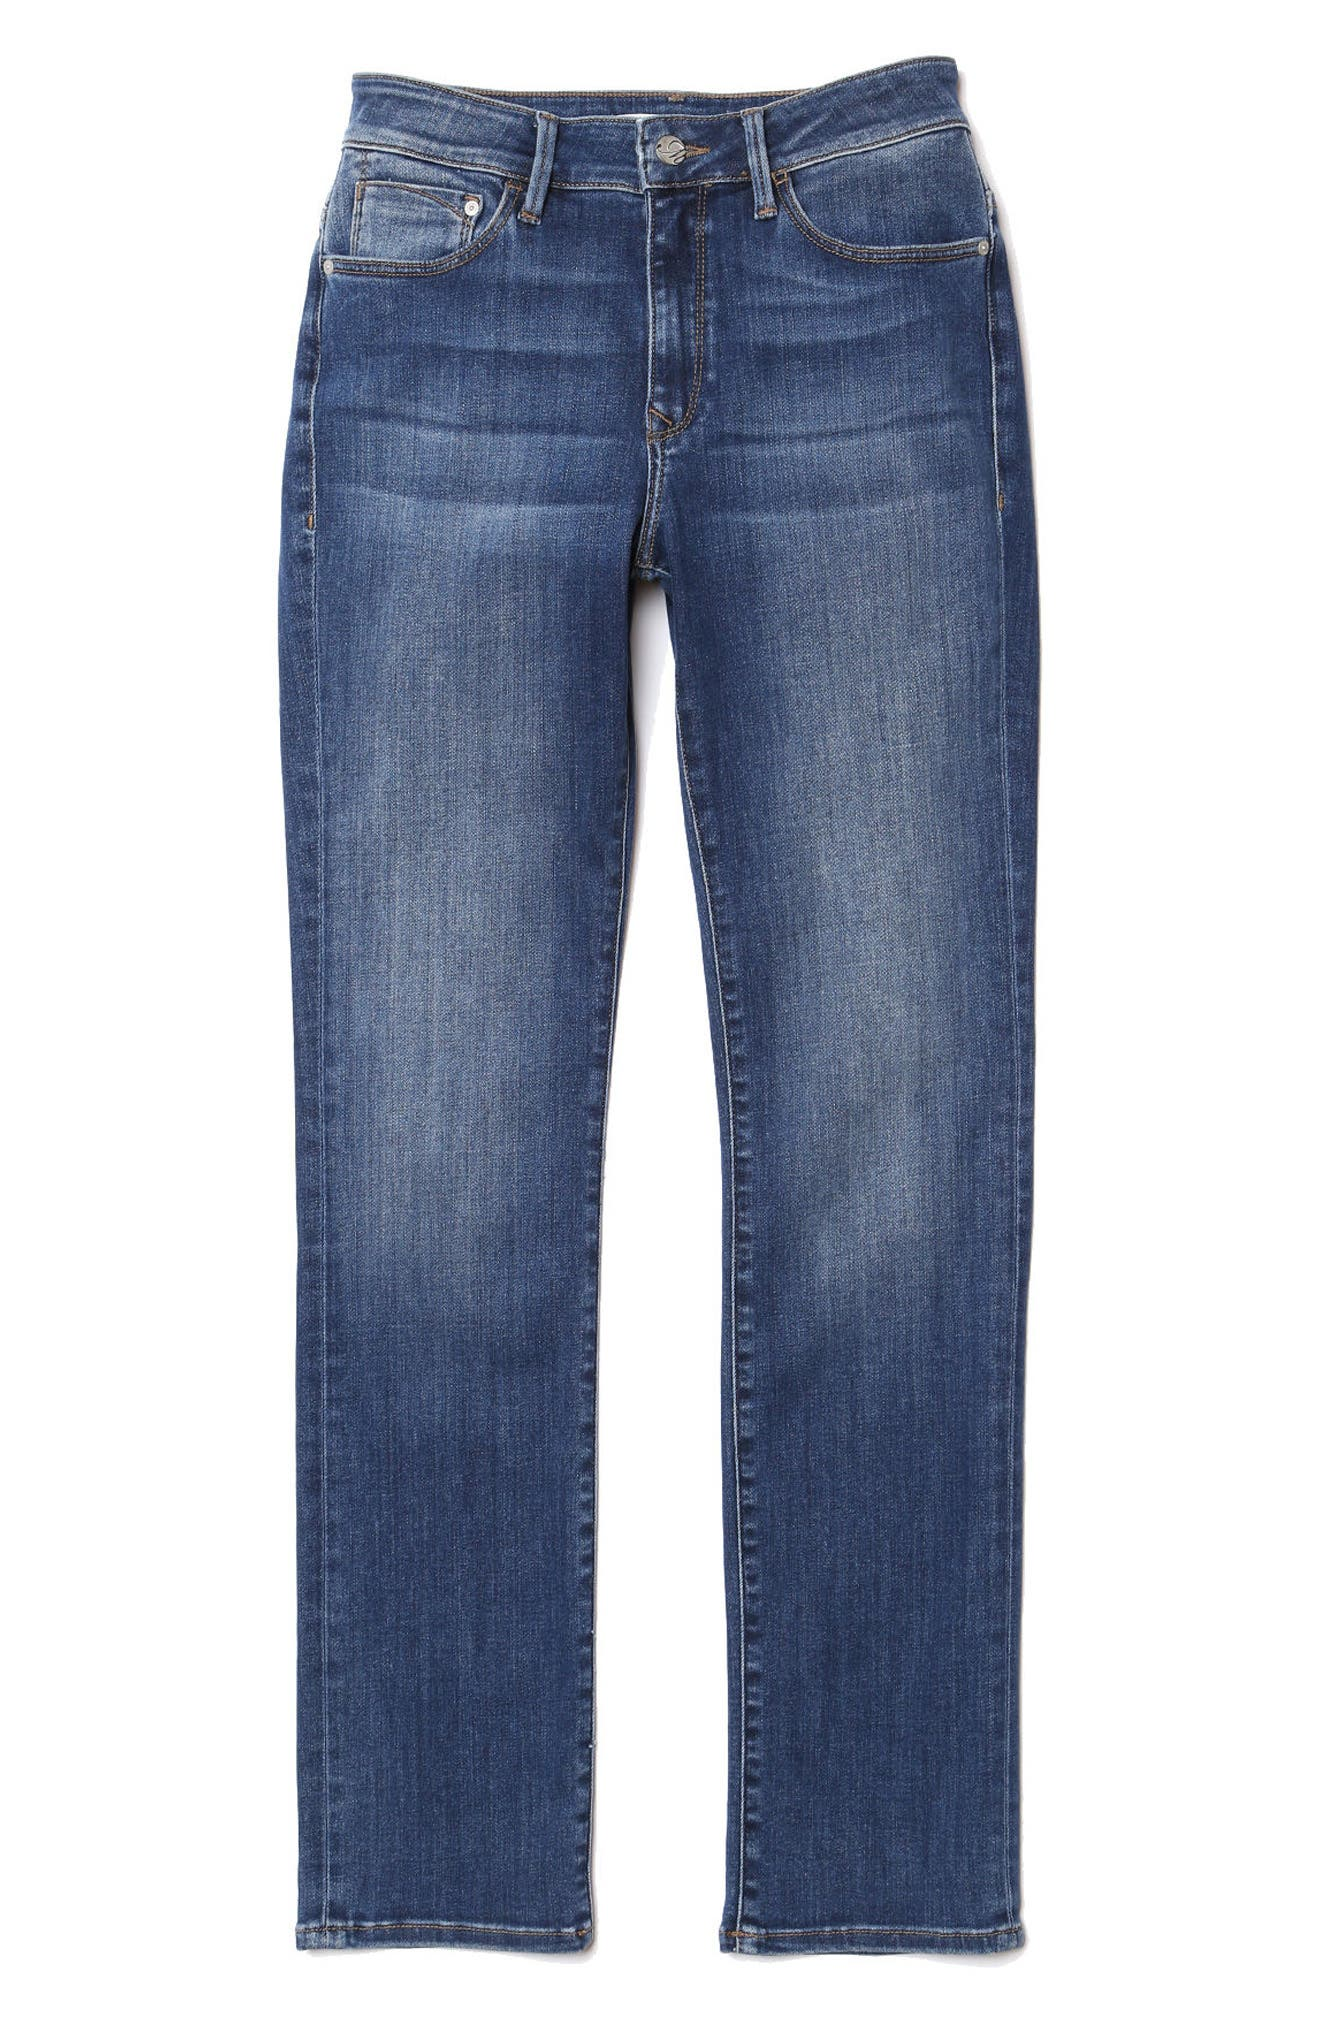 Kendra Straight Leg Jeans,                             Alternate thumbnail 4, color,                             INDIGO SUPER SOFT